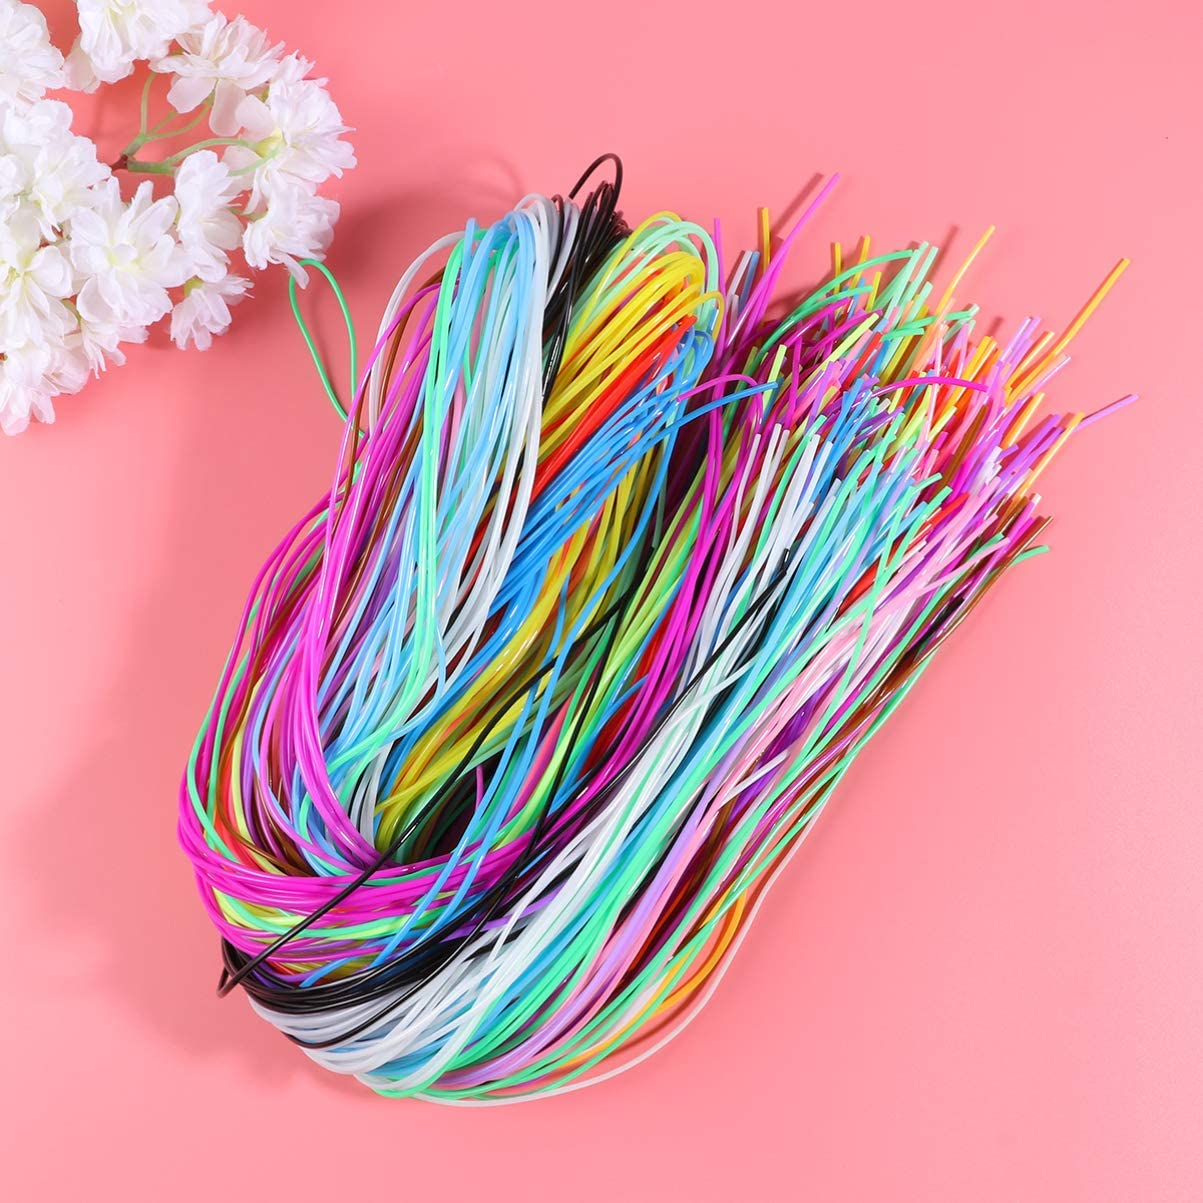 SUPVOX Plastic Lacing Cord String Braided Rope DIY Art Toy for Child Kids 200pcs